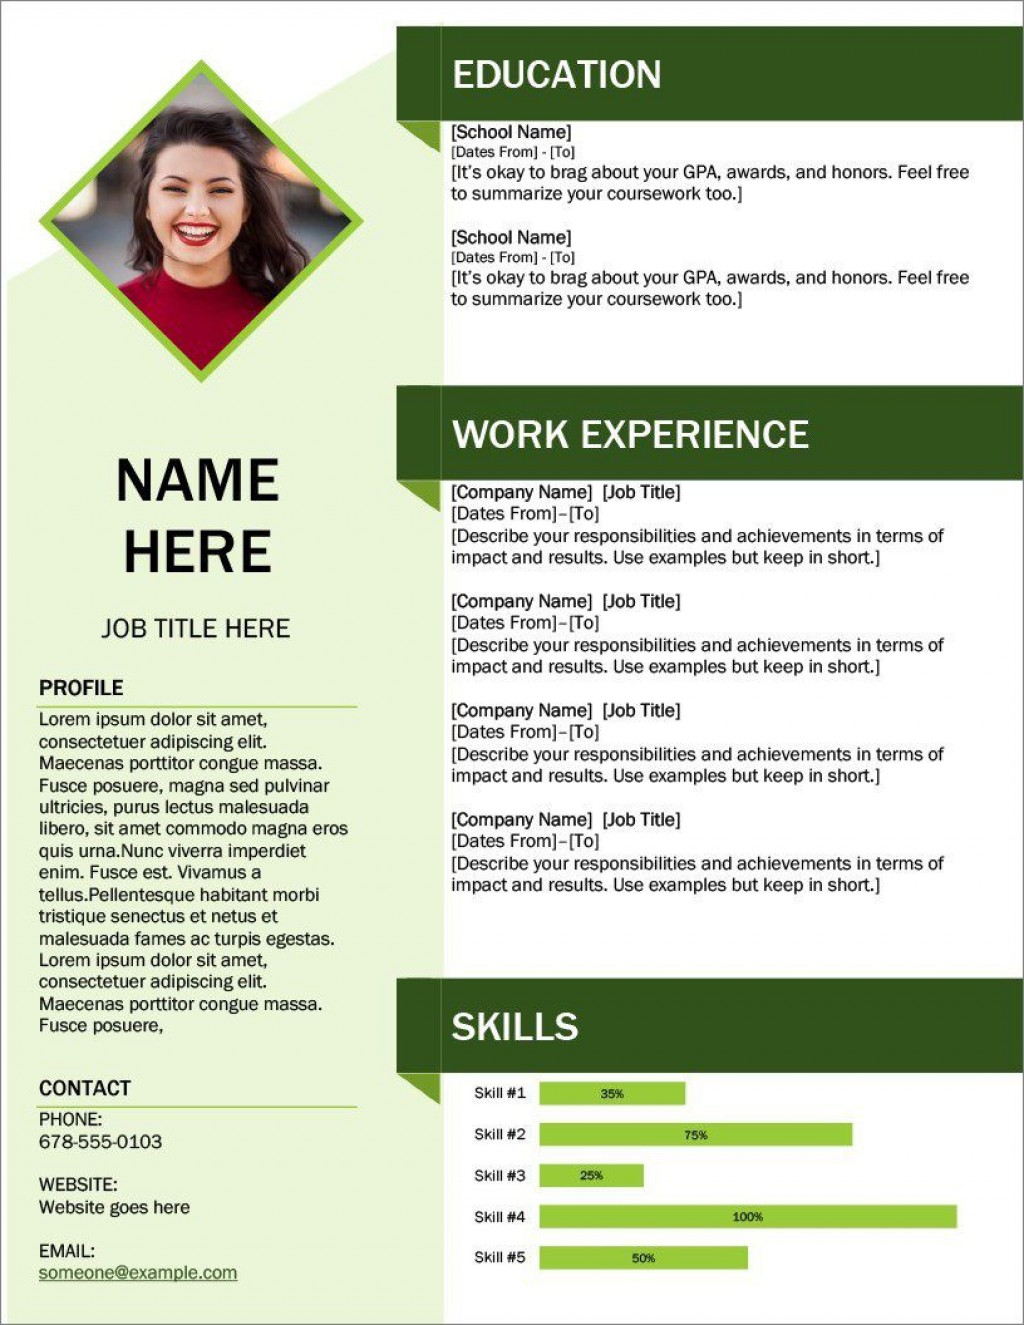 005 Beautiful Professional Resume Template Word High Definition  Microsoft Download Free 2010 2019Large